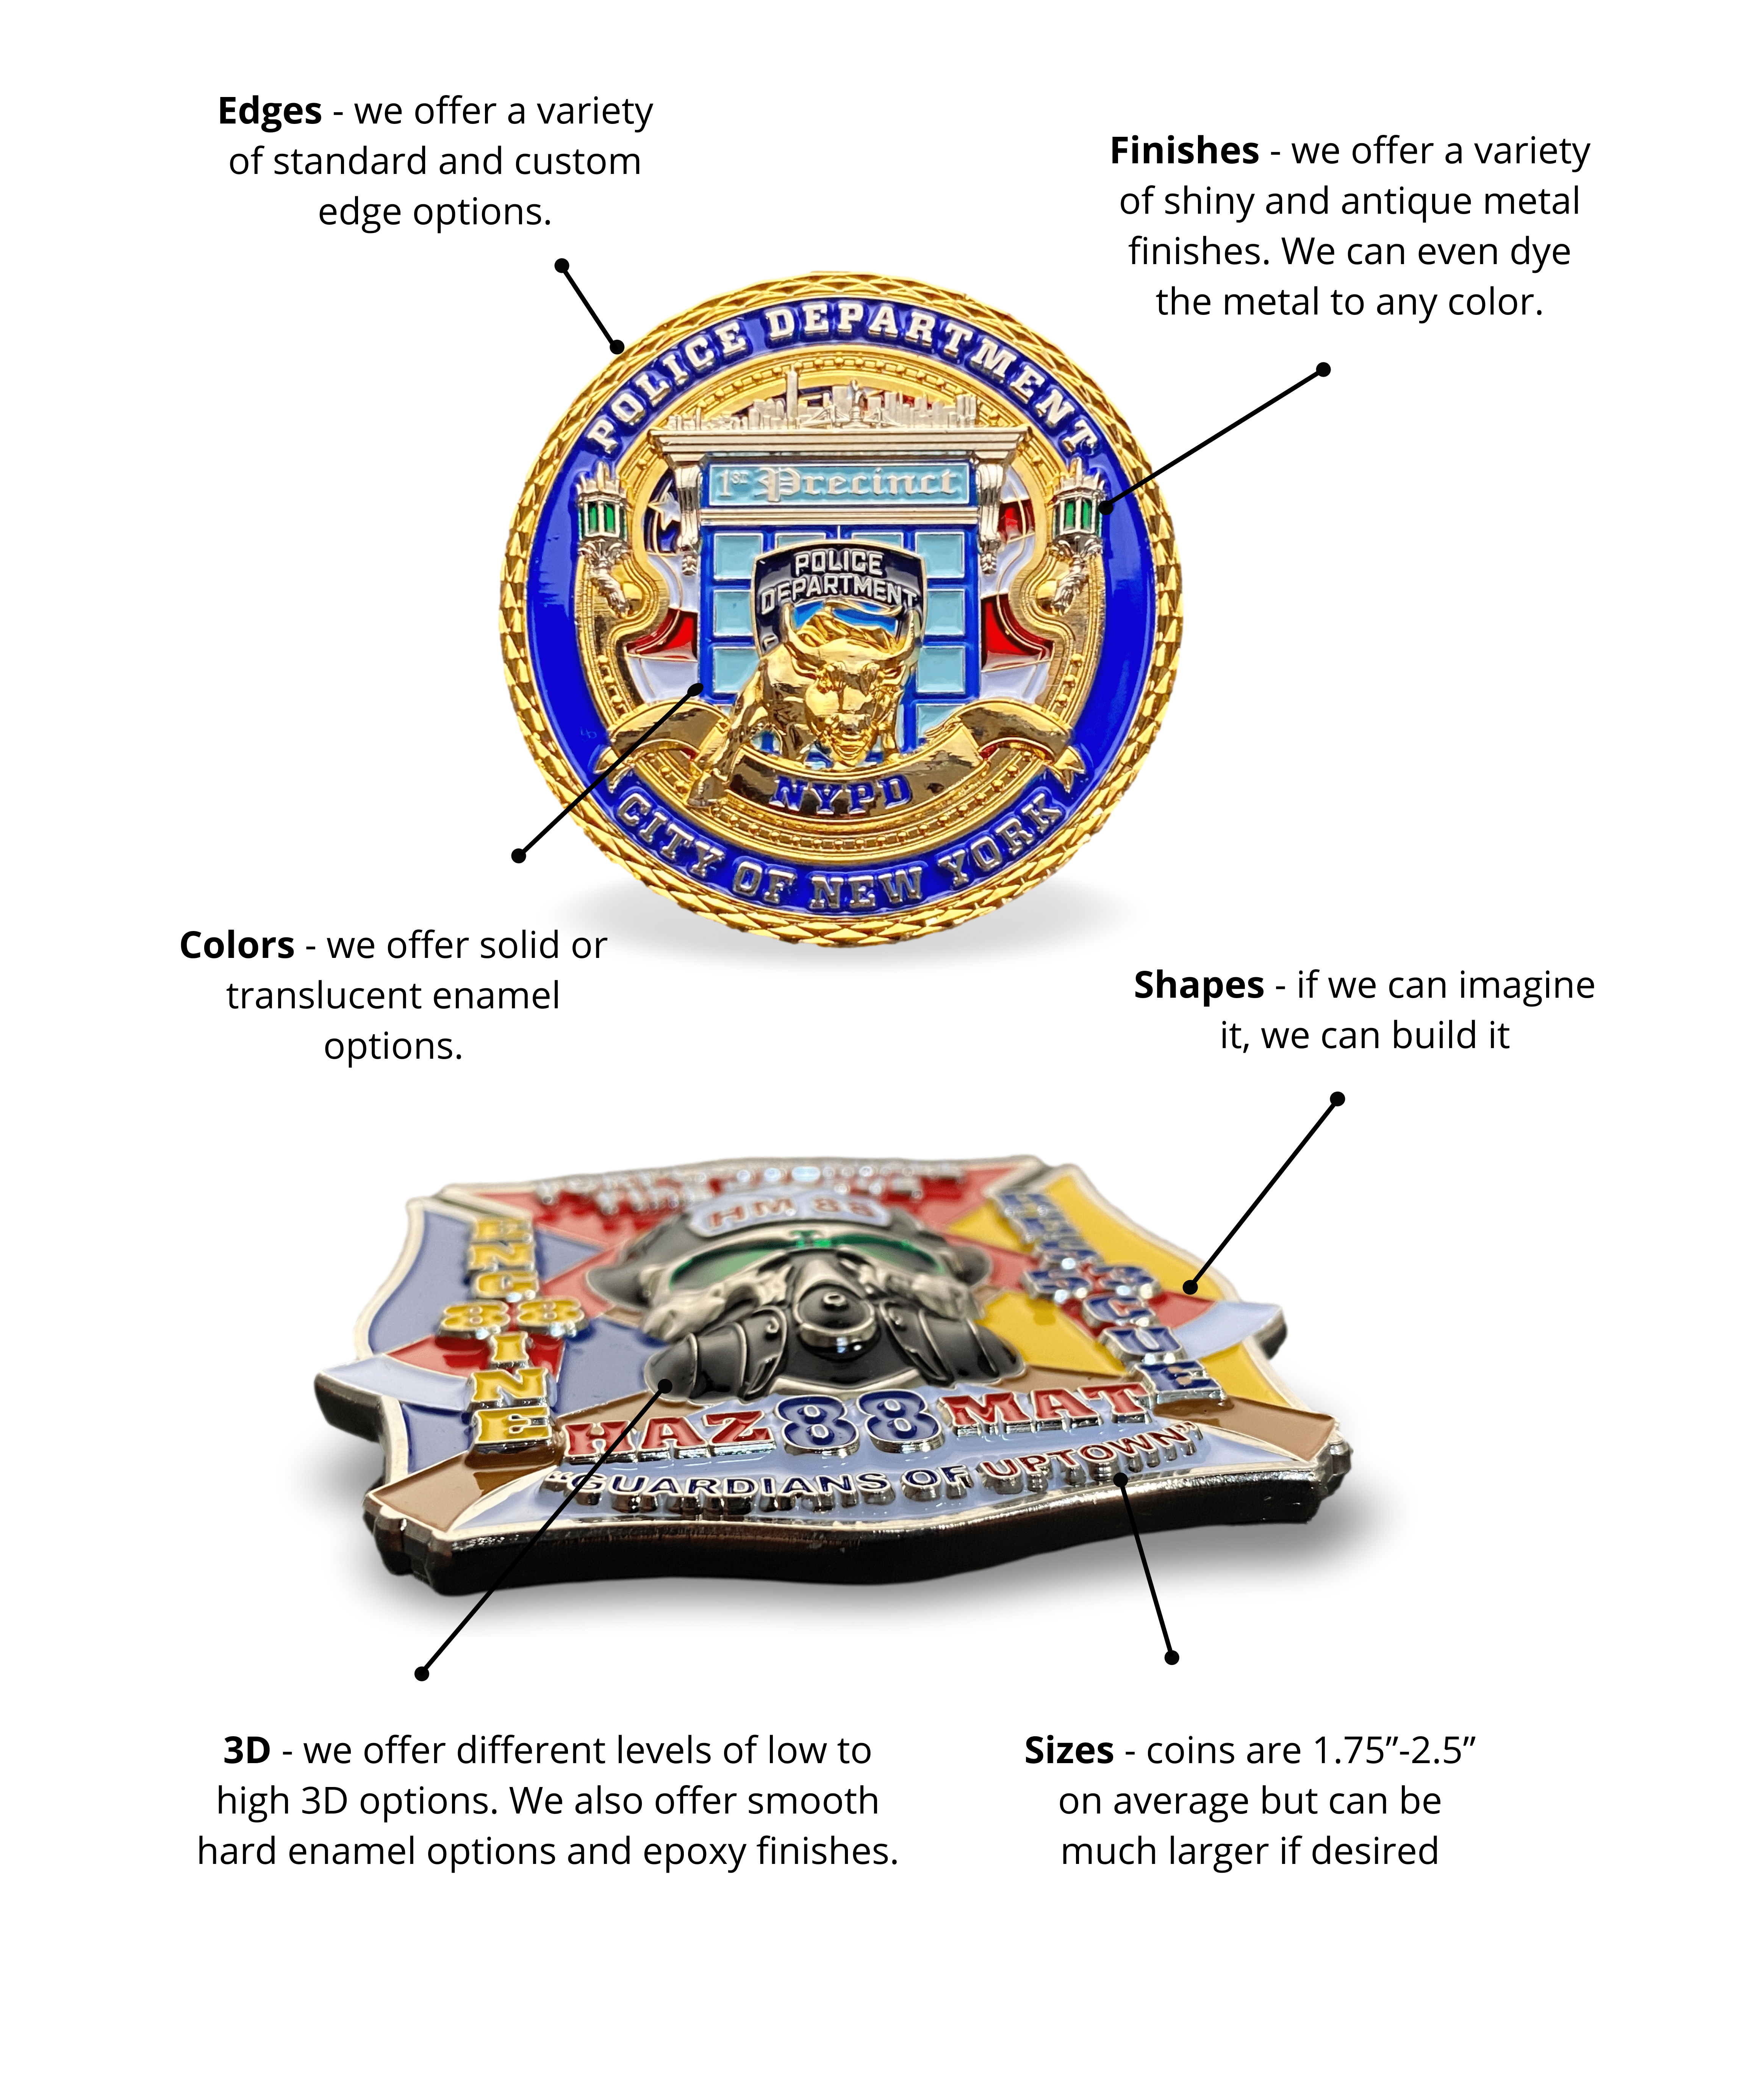 graphic of different options available when getting a coin